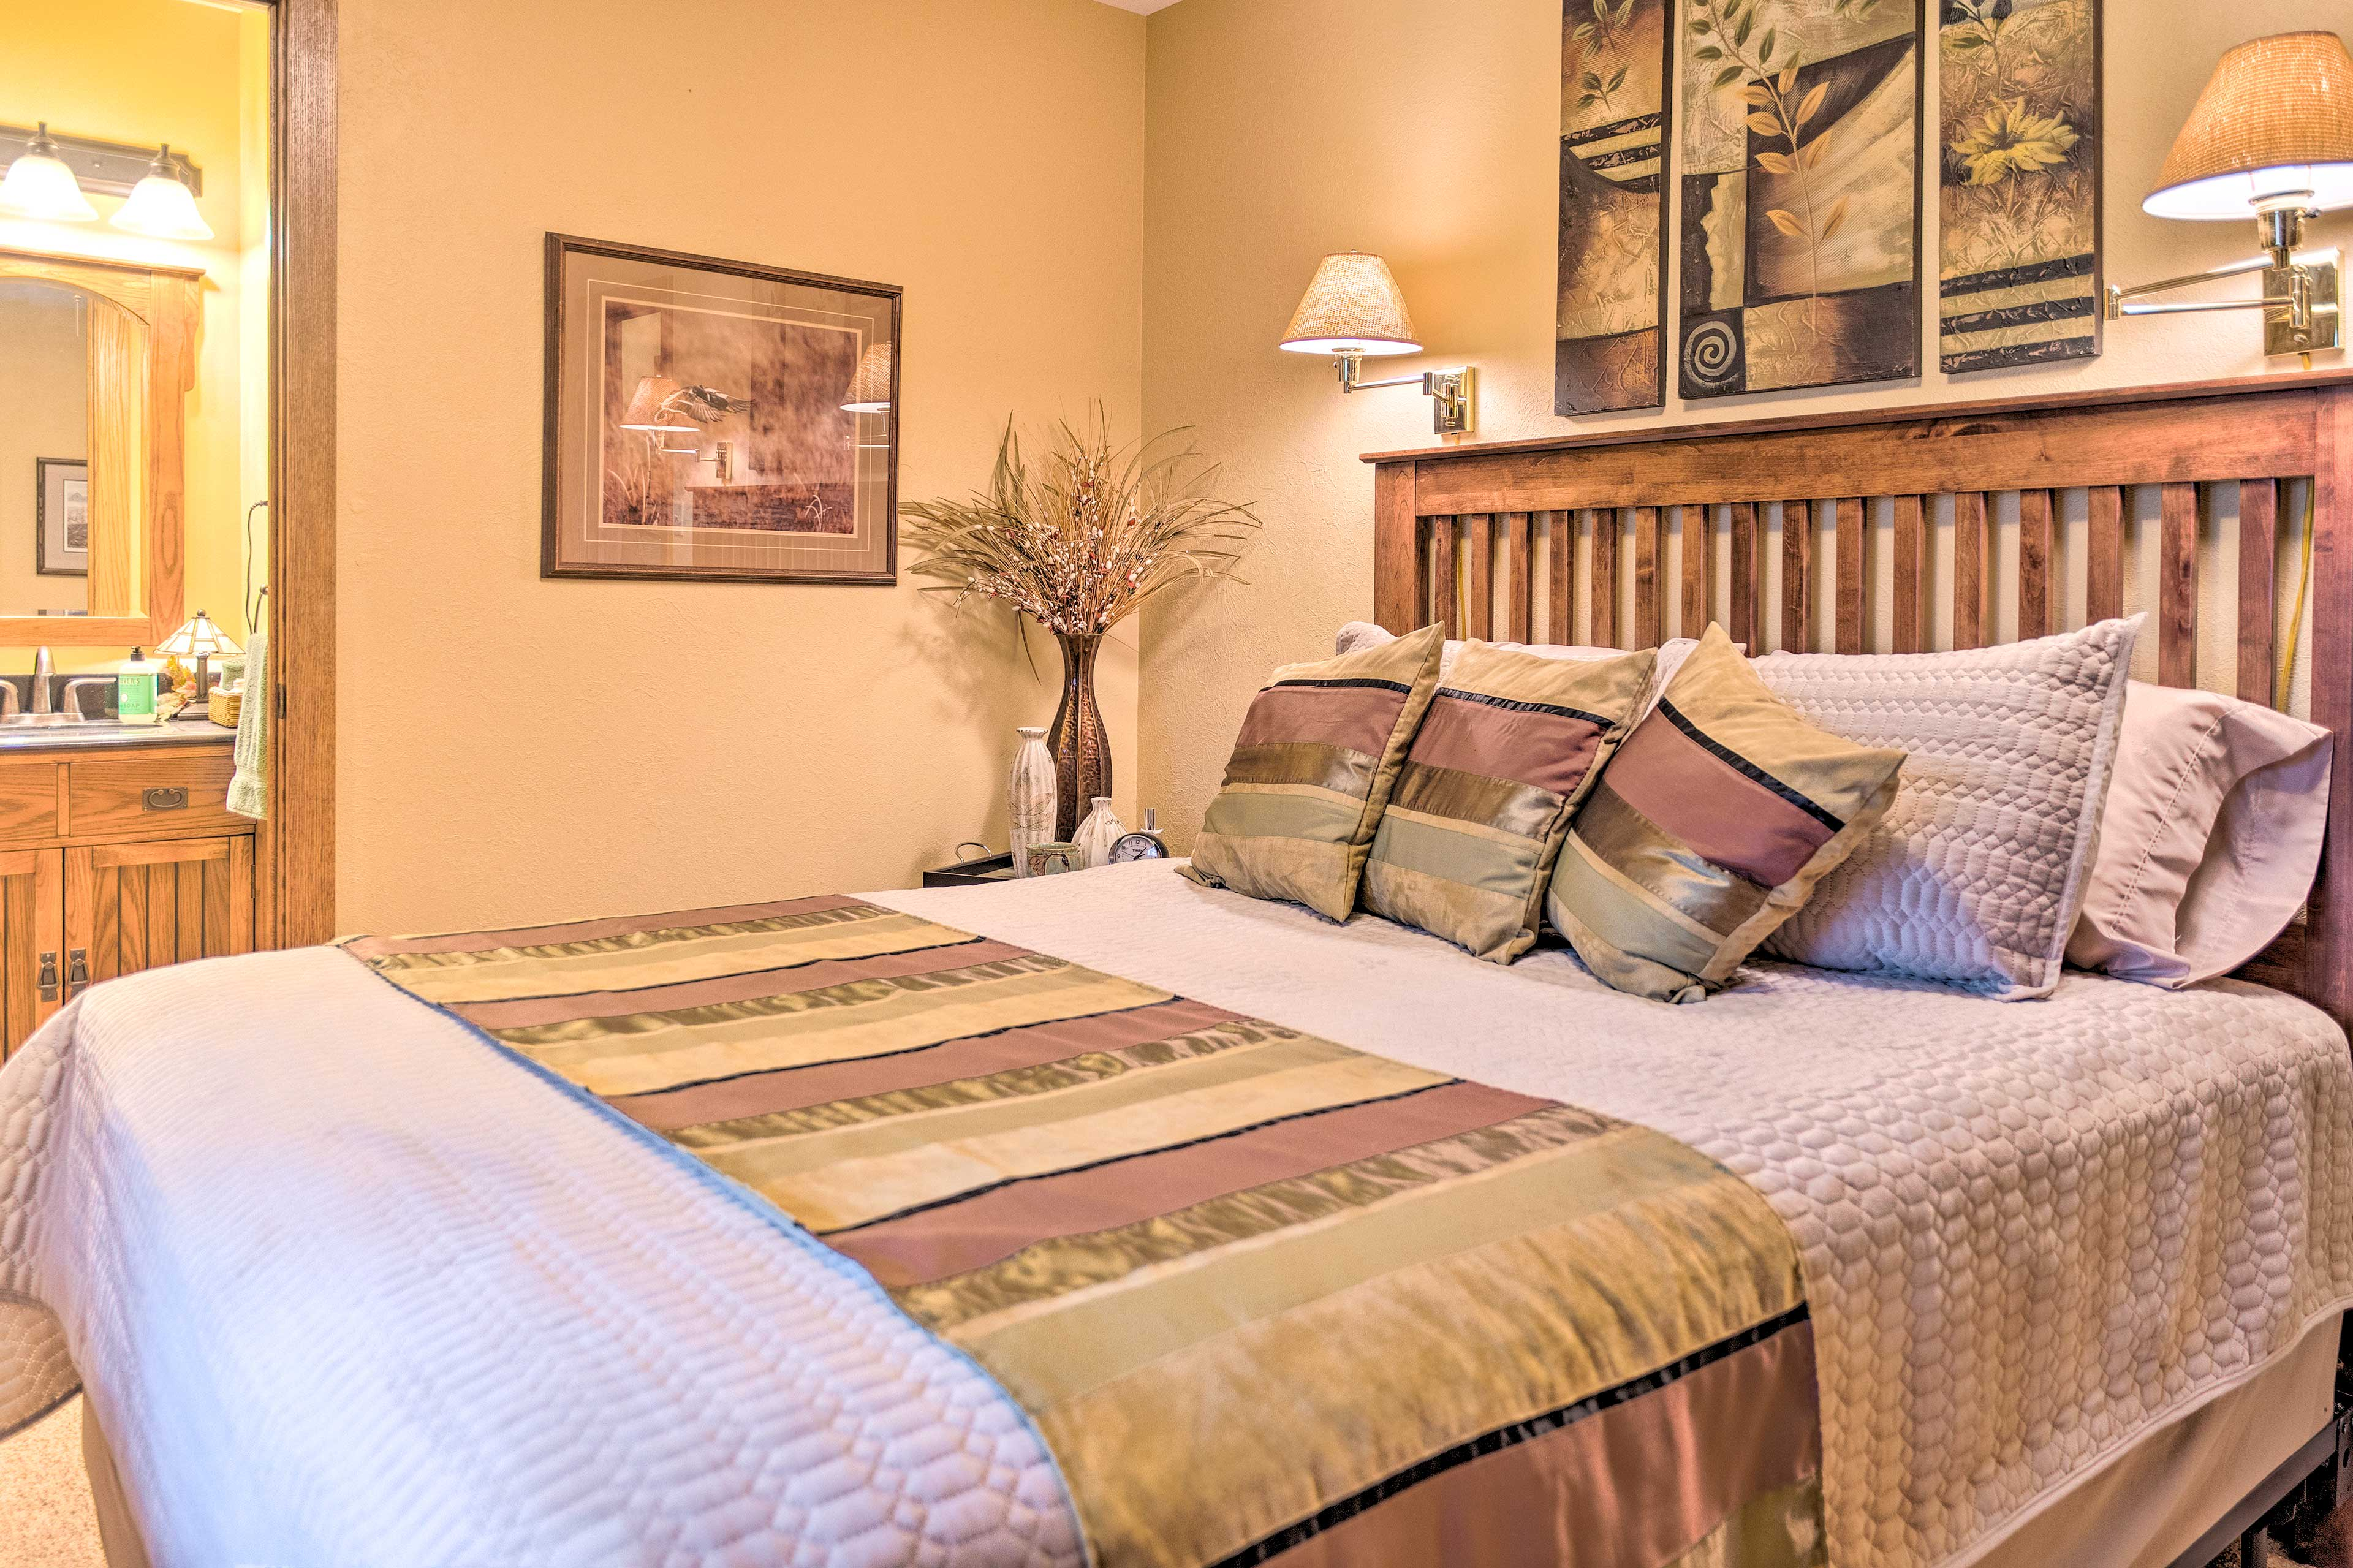 Sleep peacefully in this queen bed.